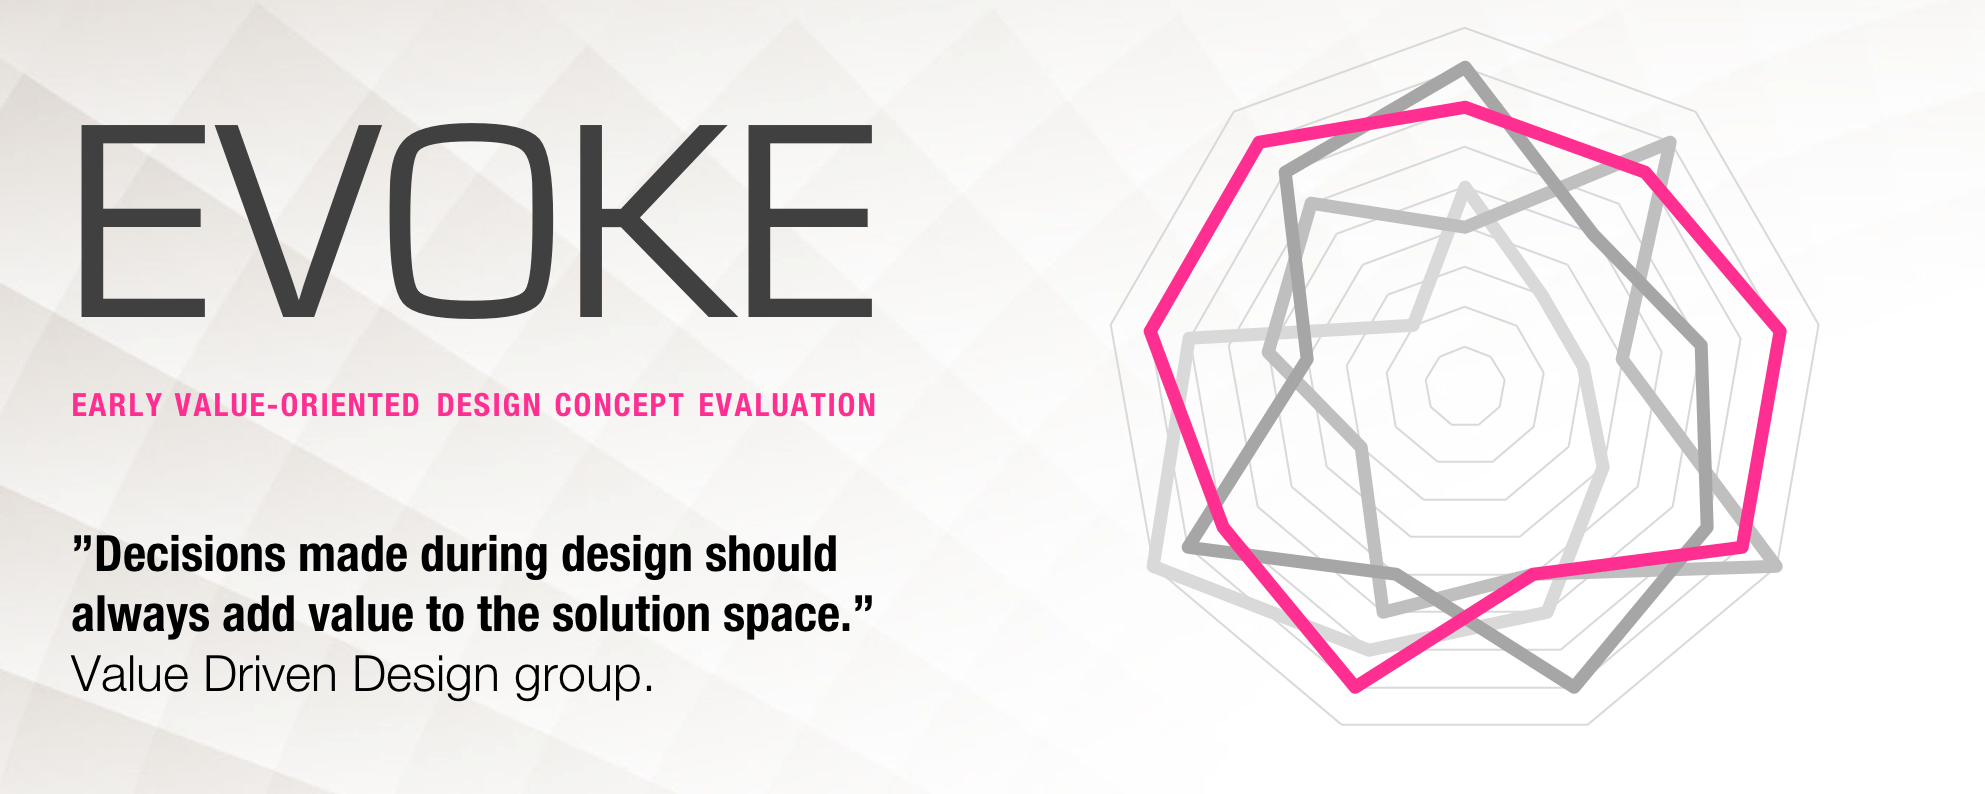 EVOKE – Early Value-Oriented Design Concept Evaluation